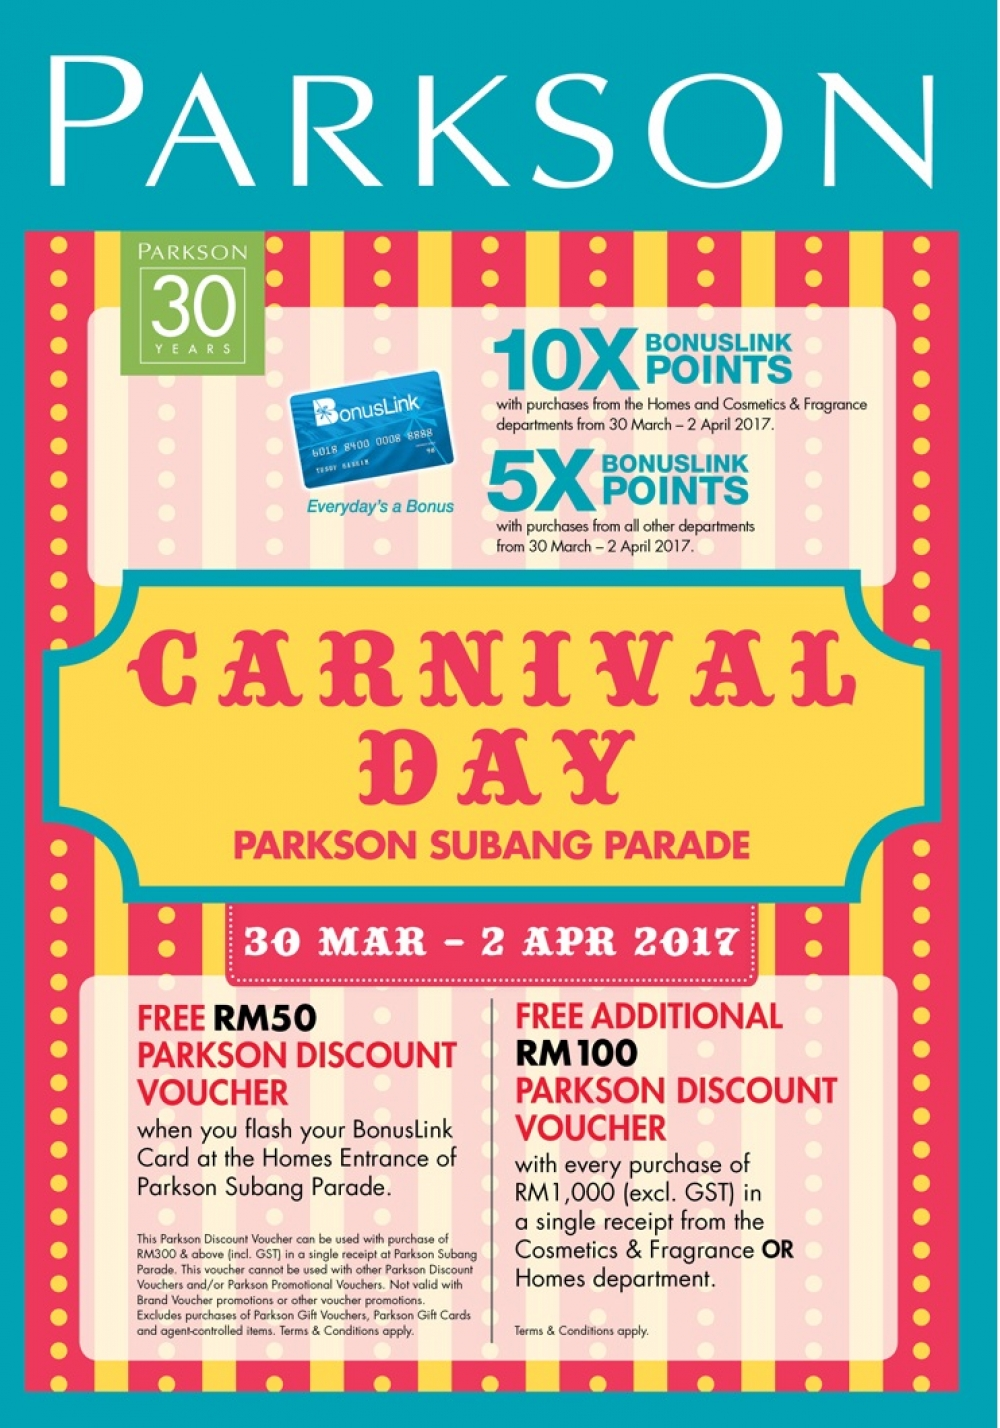 BonusLink Card Member Rewards: Parkson Carnival Day Free RM50/RM100 Discount  Vouchers, 10X/5X Points... @ Subang Parade Until 2 April 2017  Free Discount Vouchers